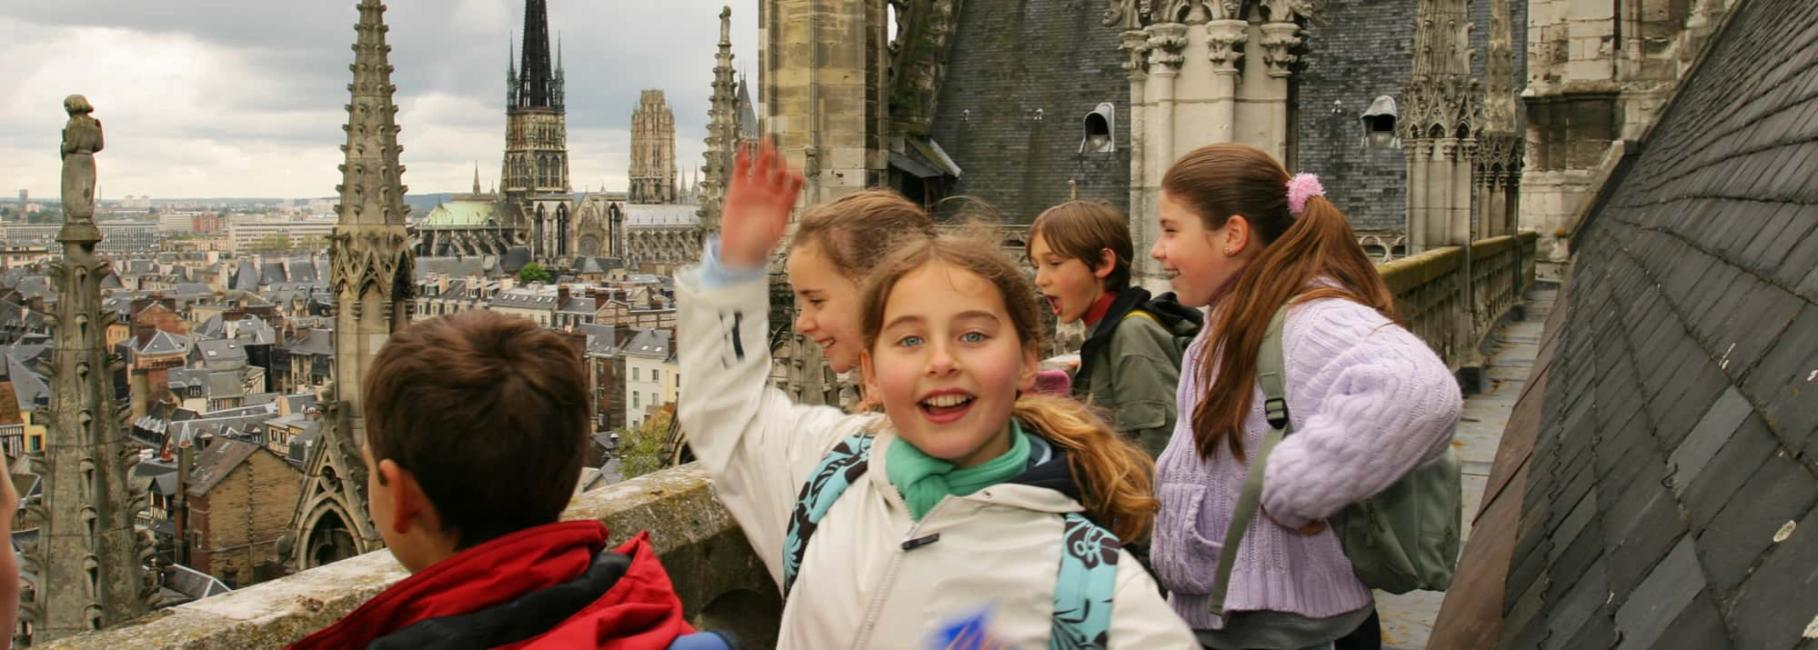 normandy primary trip header nst